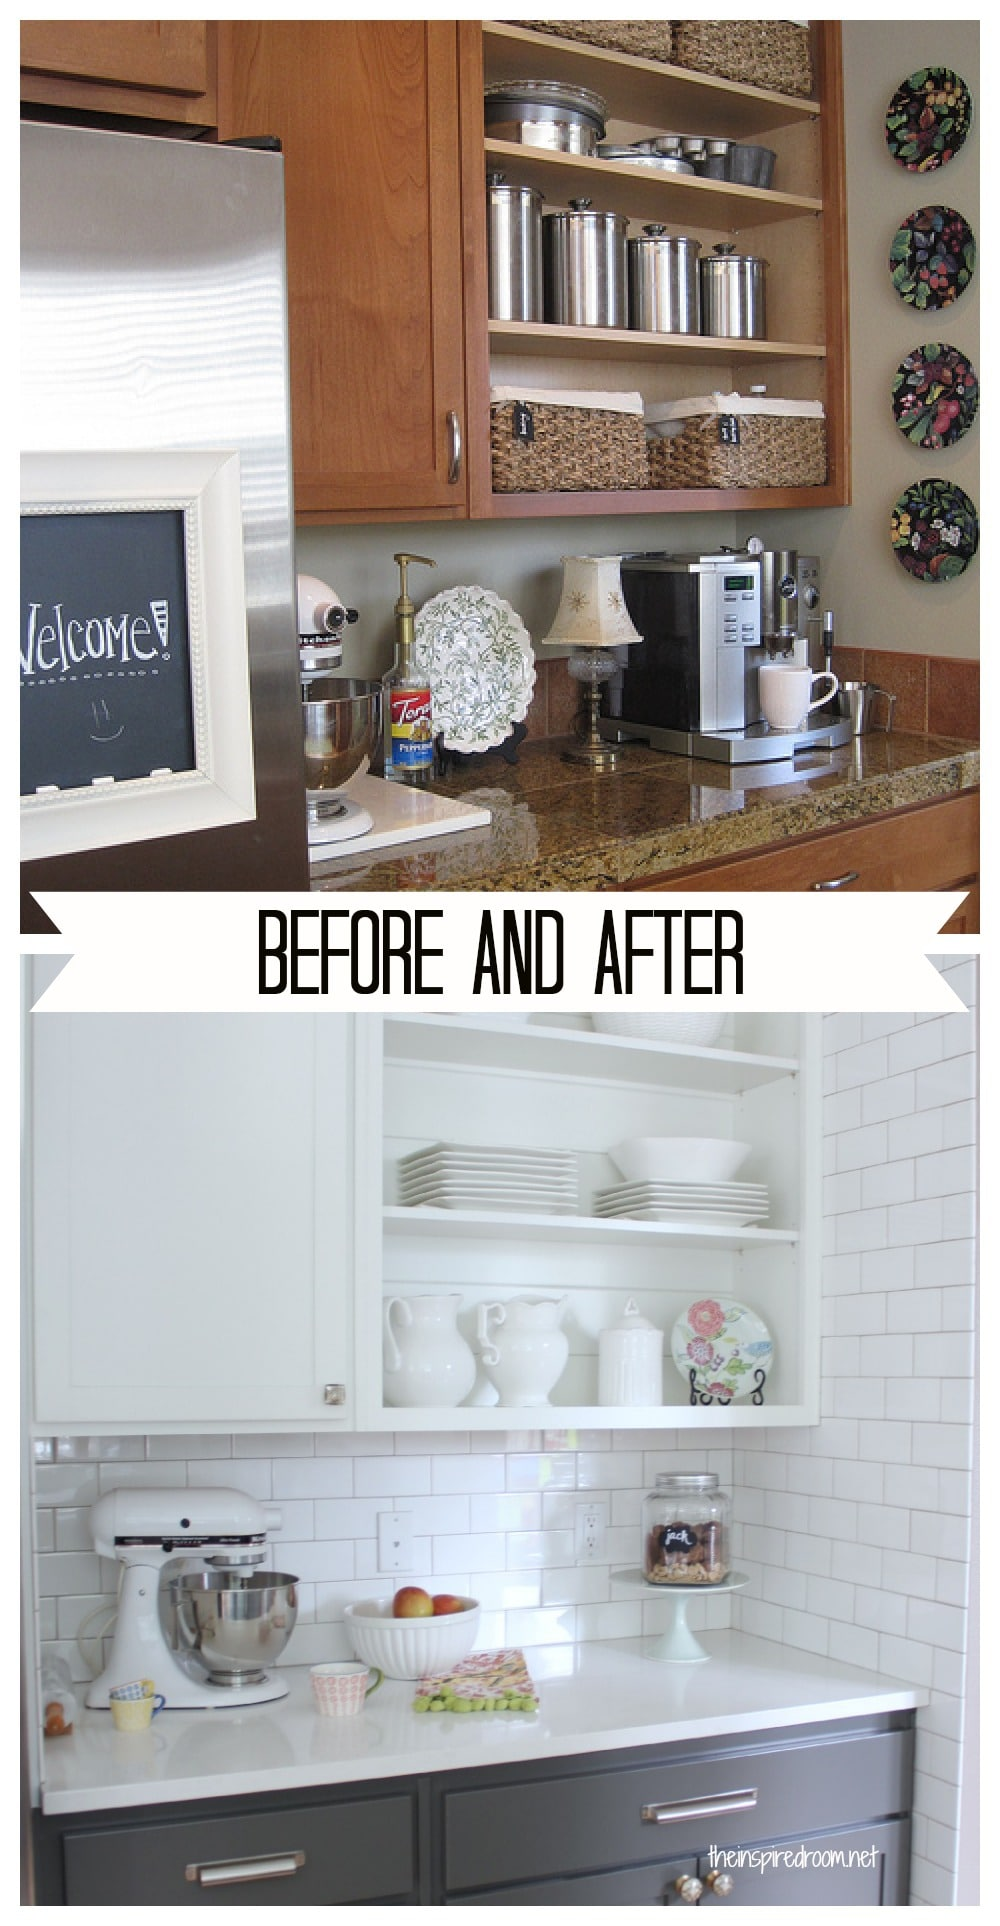 Top Kitchen Cabinets Makeover Before and After 1000 x 1926 · 366 kB · jpeg